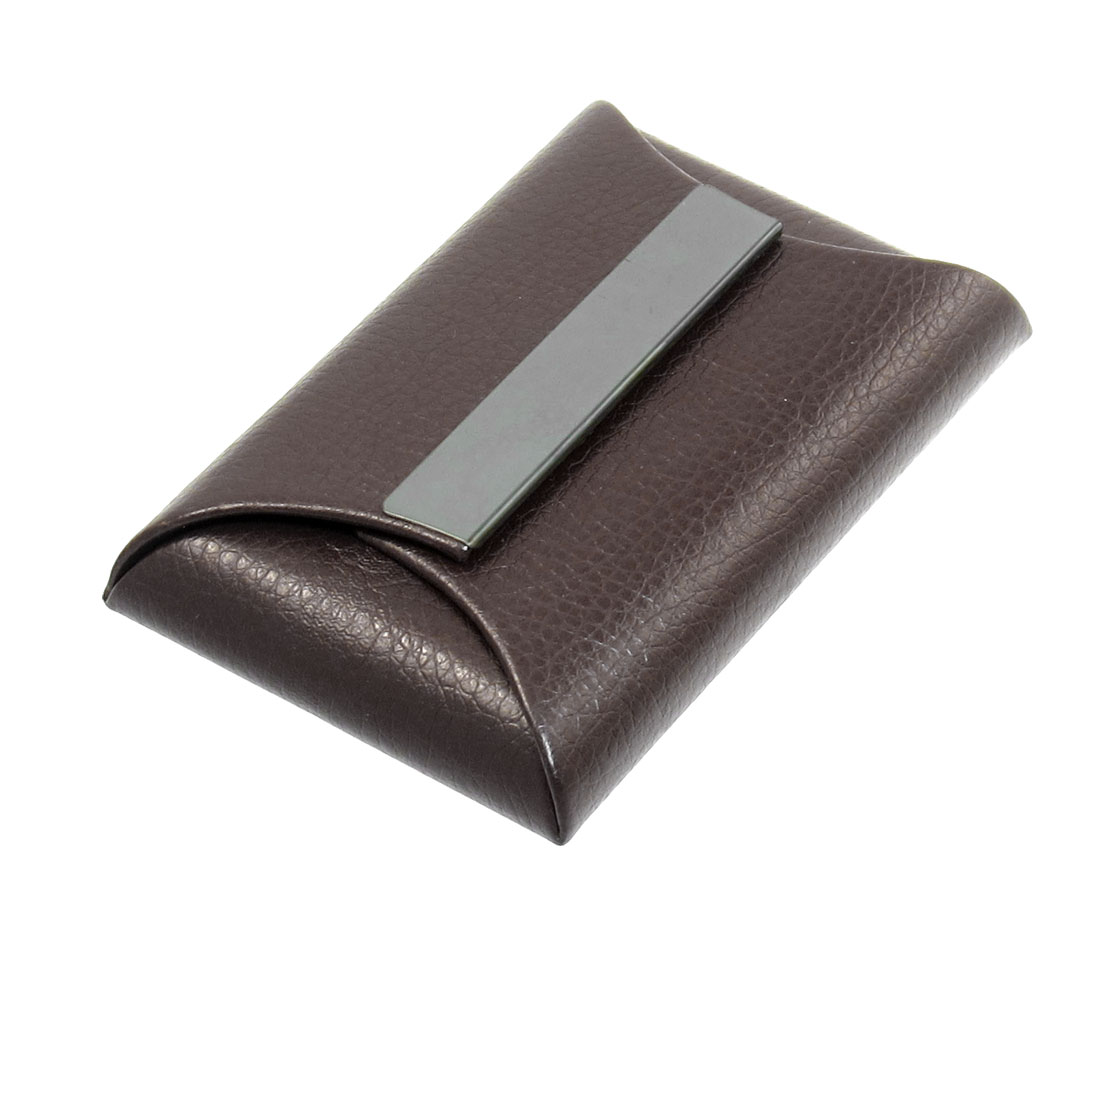 Magnetic Flap Closure Brown Envelop Shape Business Card Holder Case